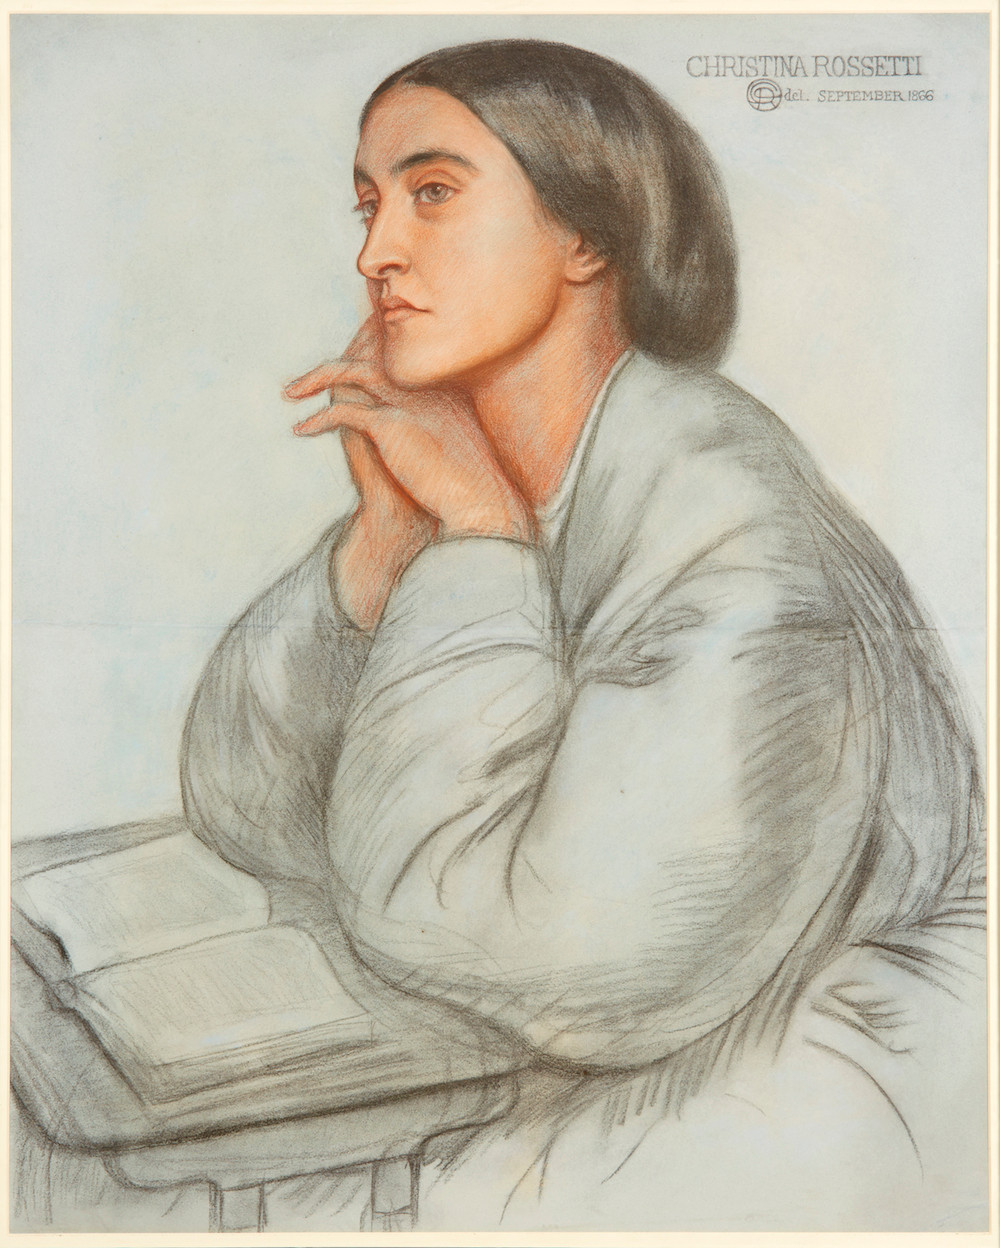 drawing of a young woman, Christina Rossetti